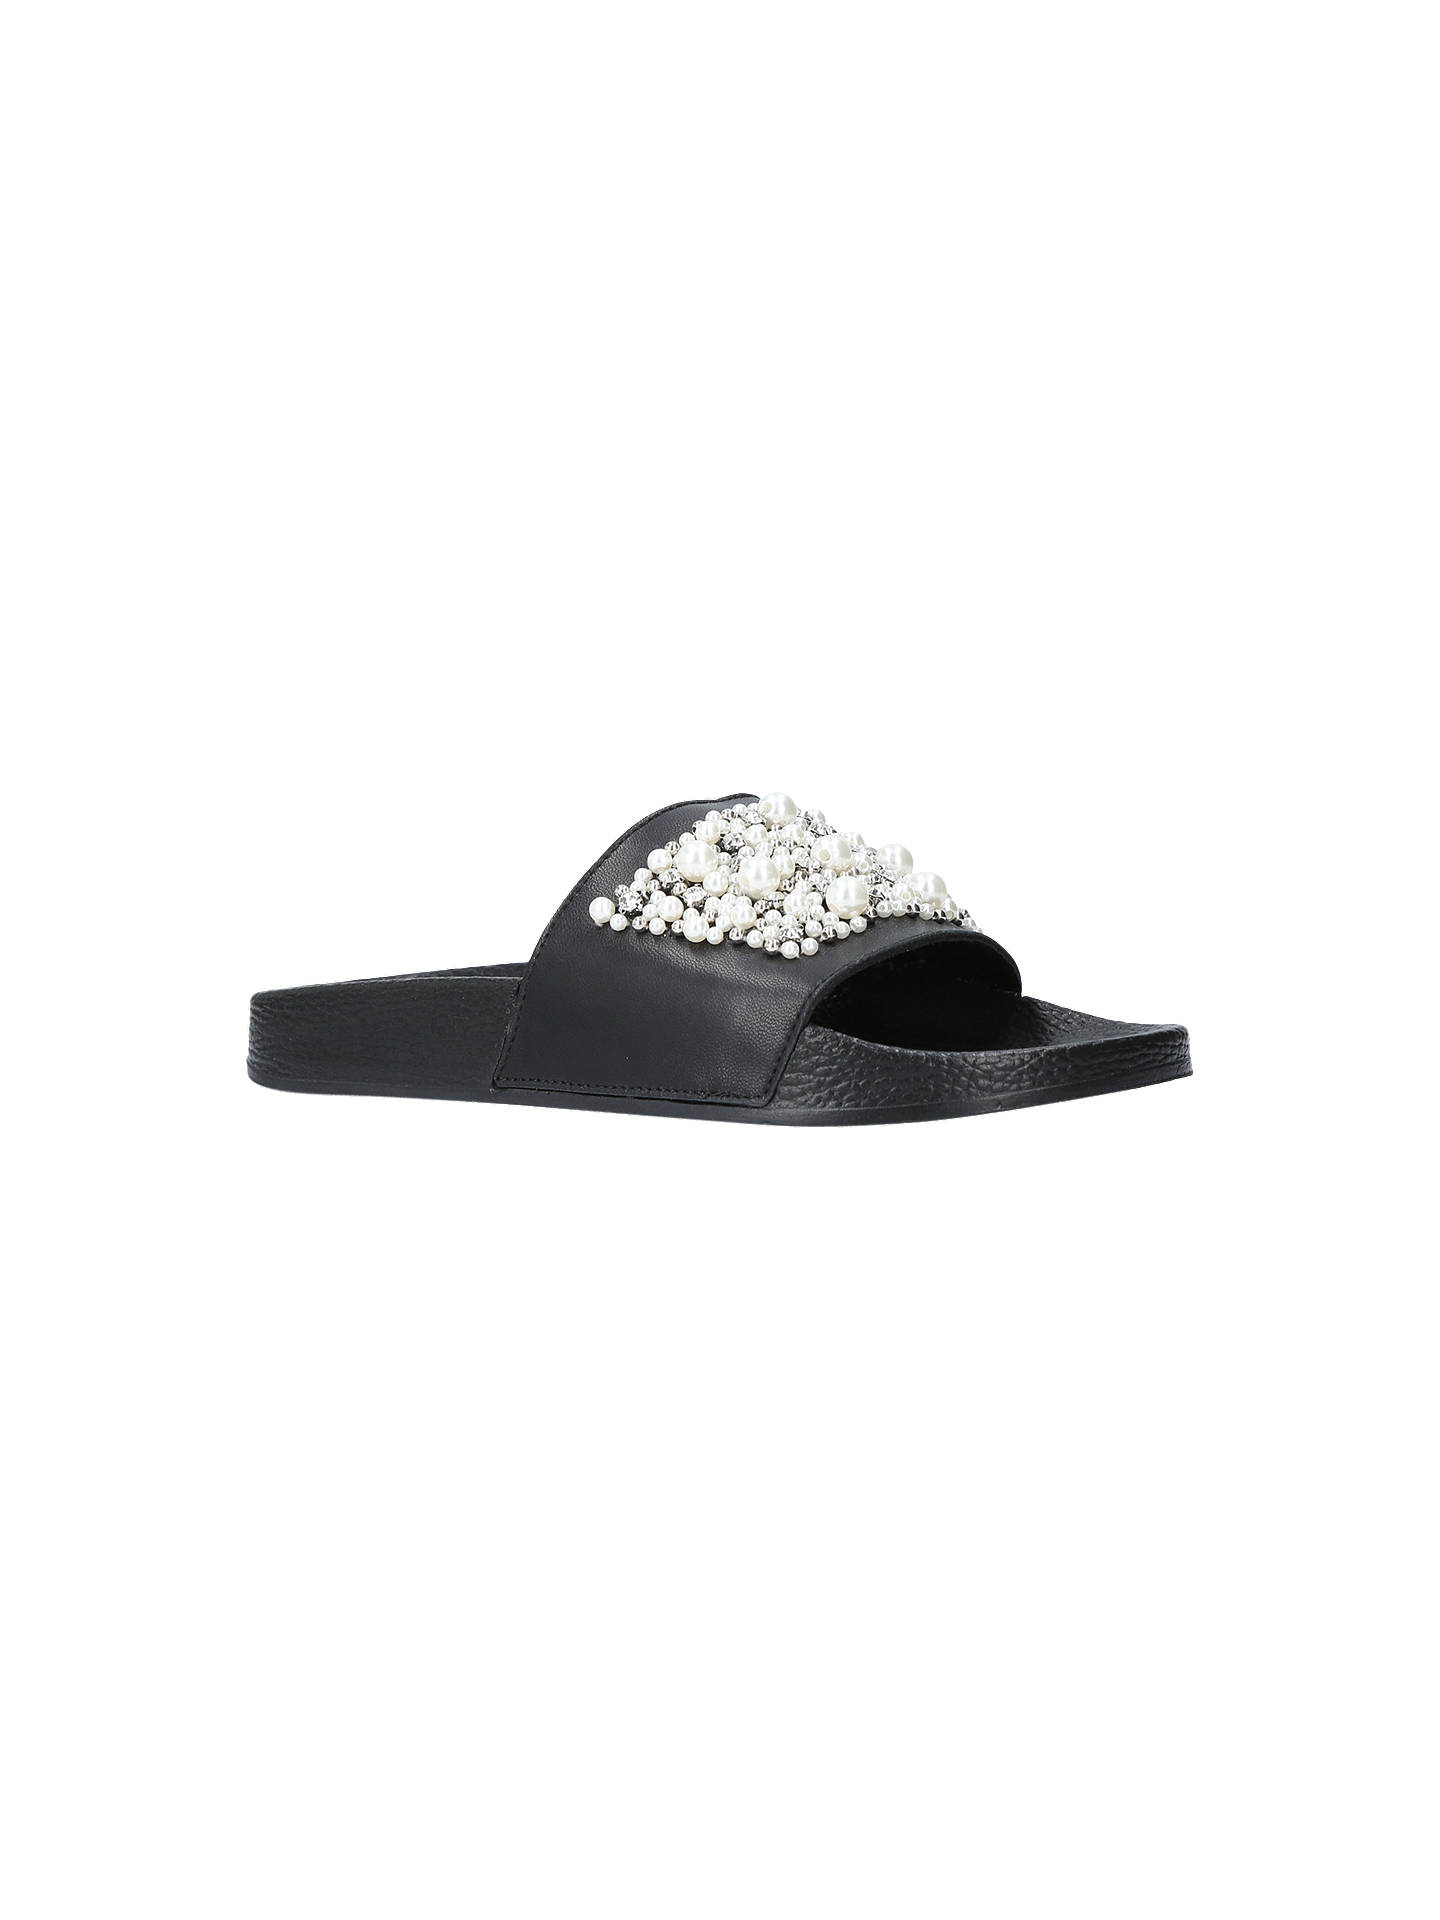 38df61389675c7 Carvela Kirsty Embellished Slider Sandals at John Lewis   Partners